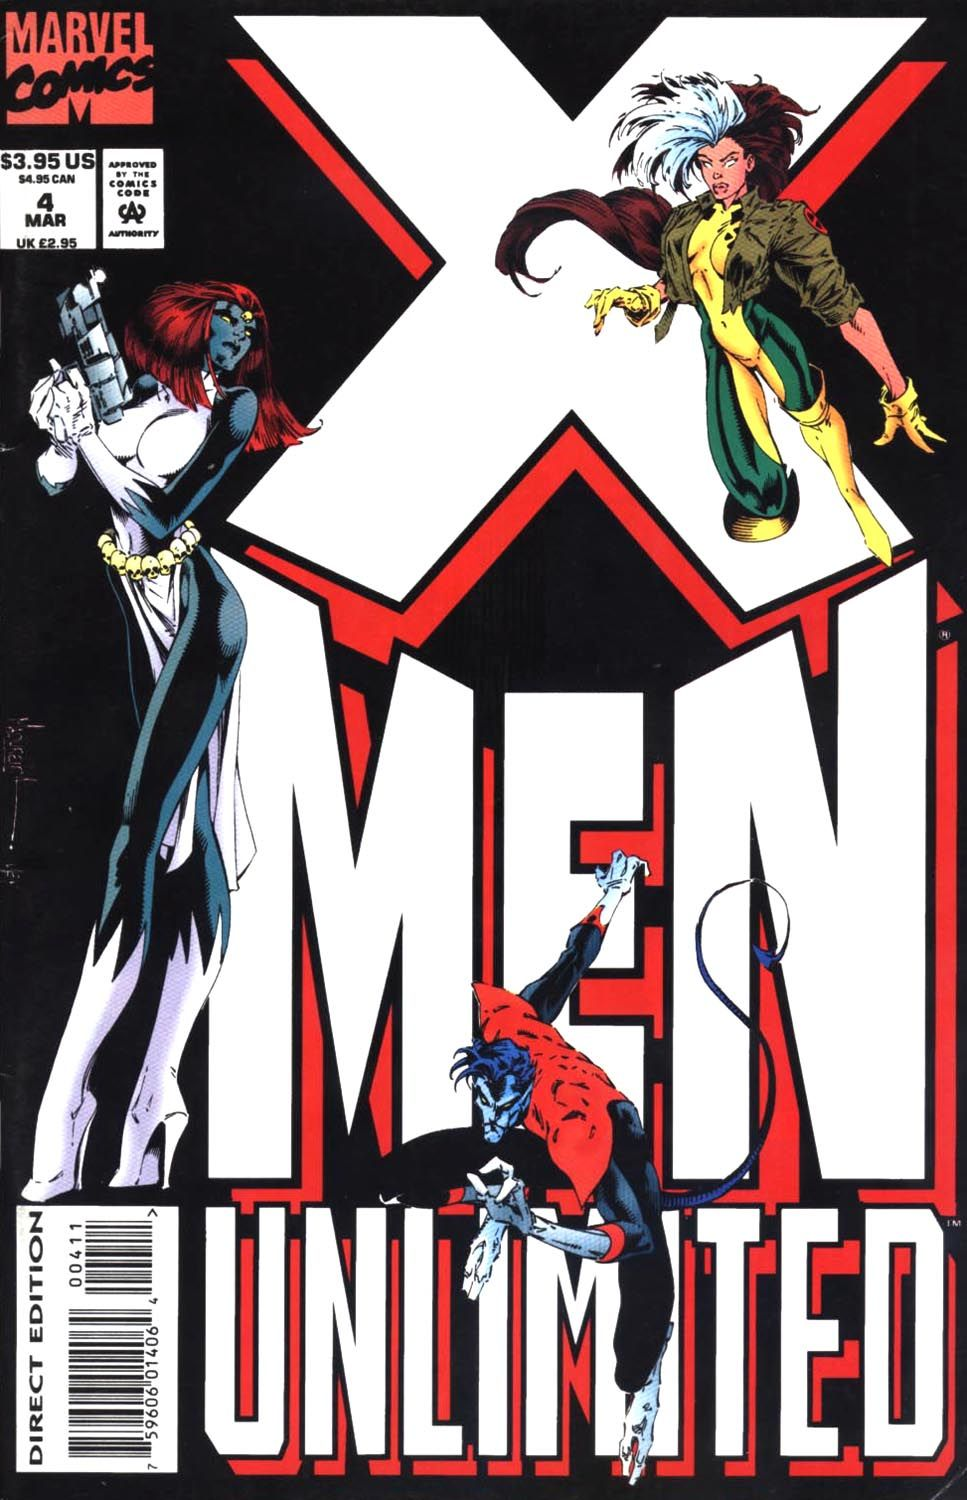 X Men Unlimited 1993 Issue 4 Read X Men Unlimited 1993 Issue 4 Comic Online In High Quality X Men Comic Book Covers Comics